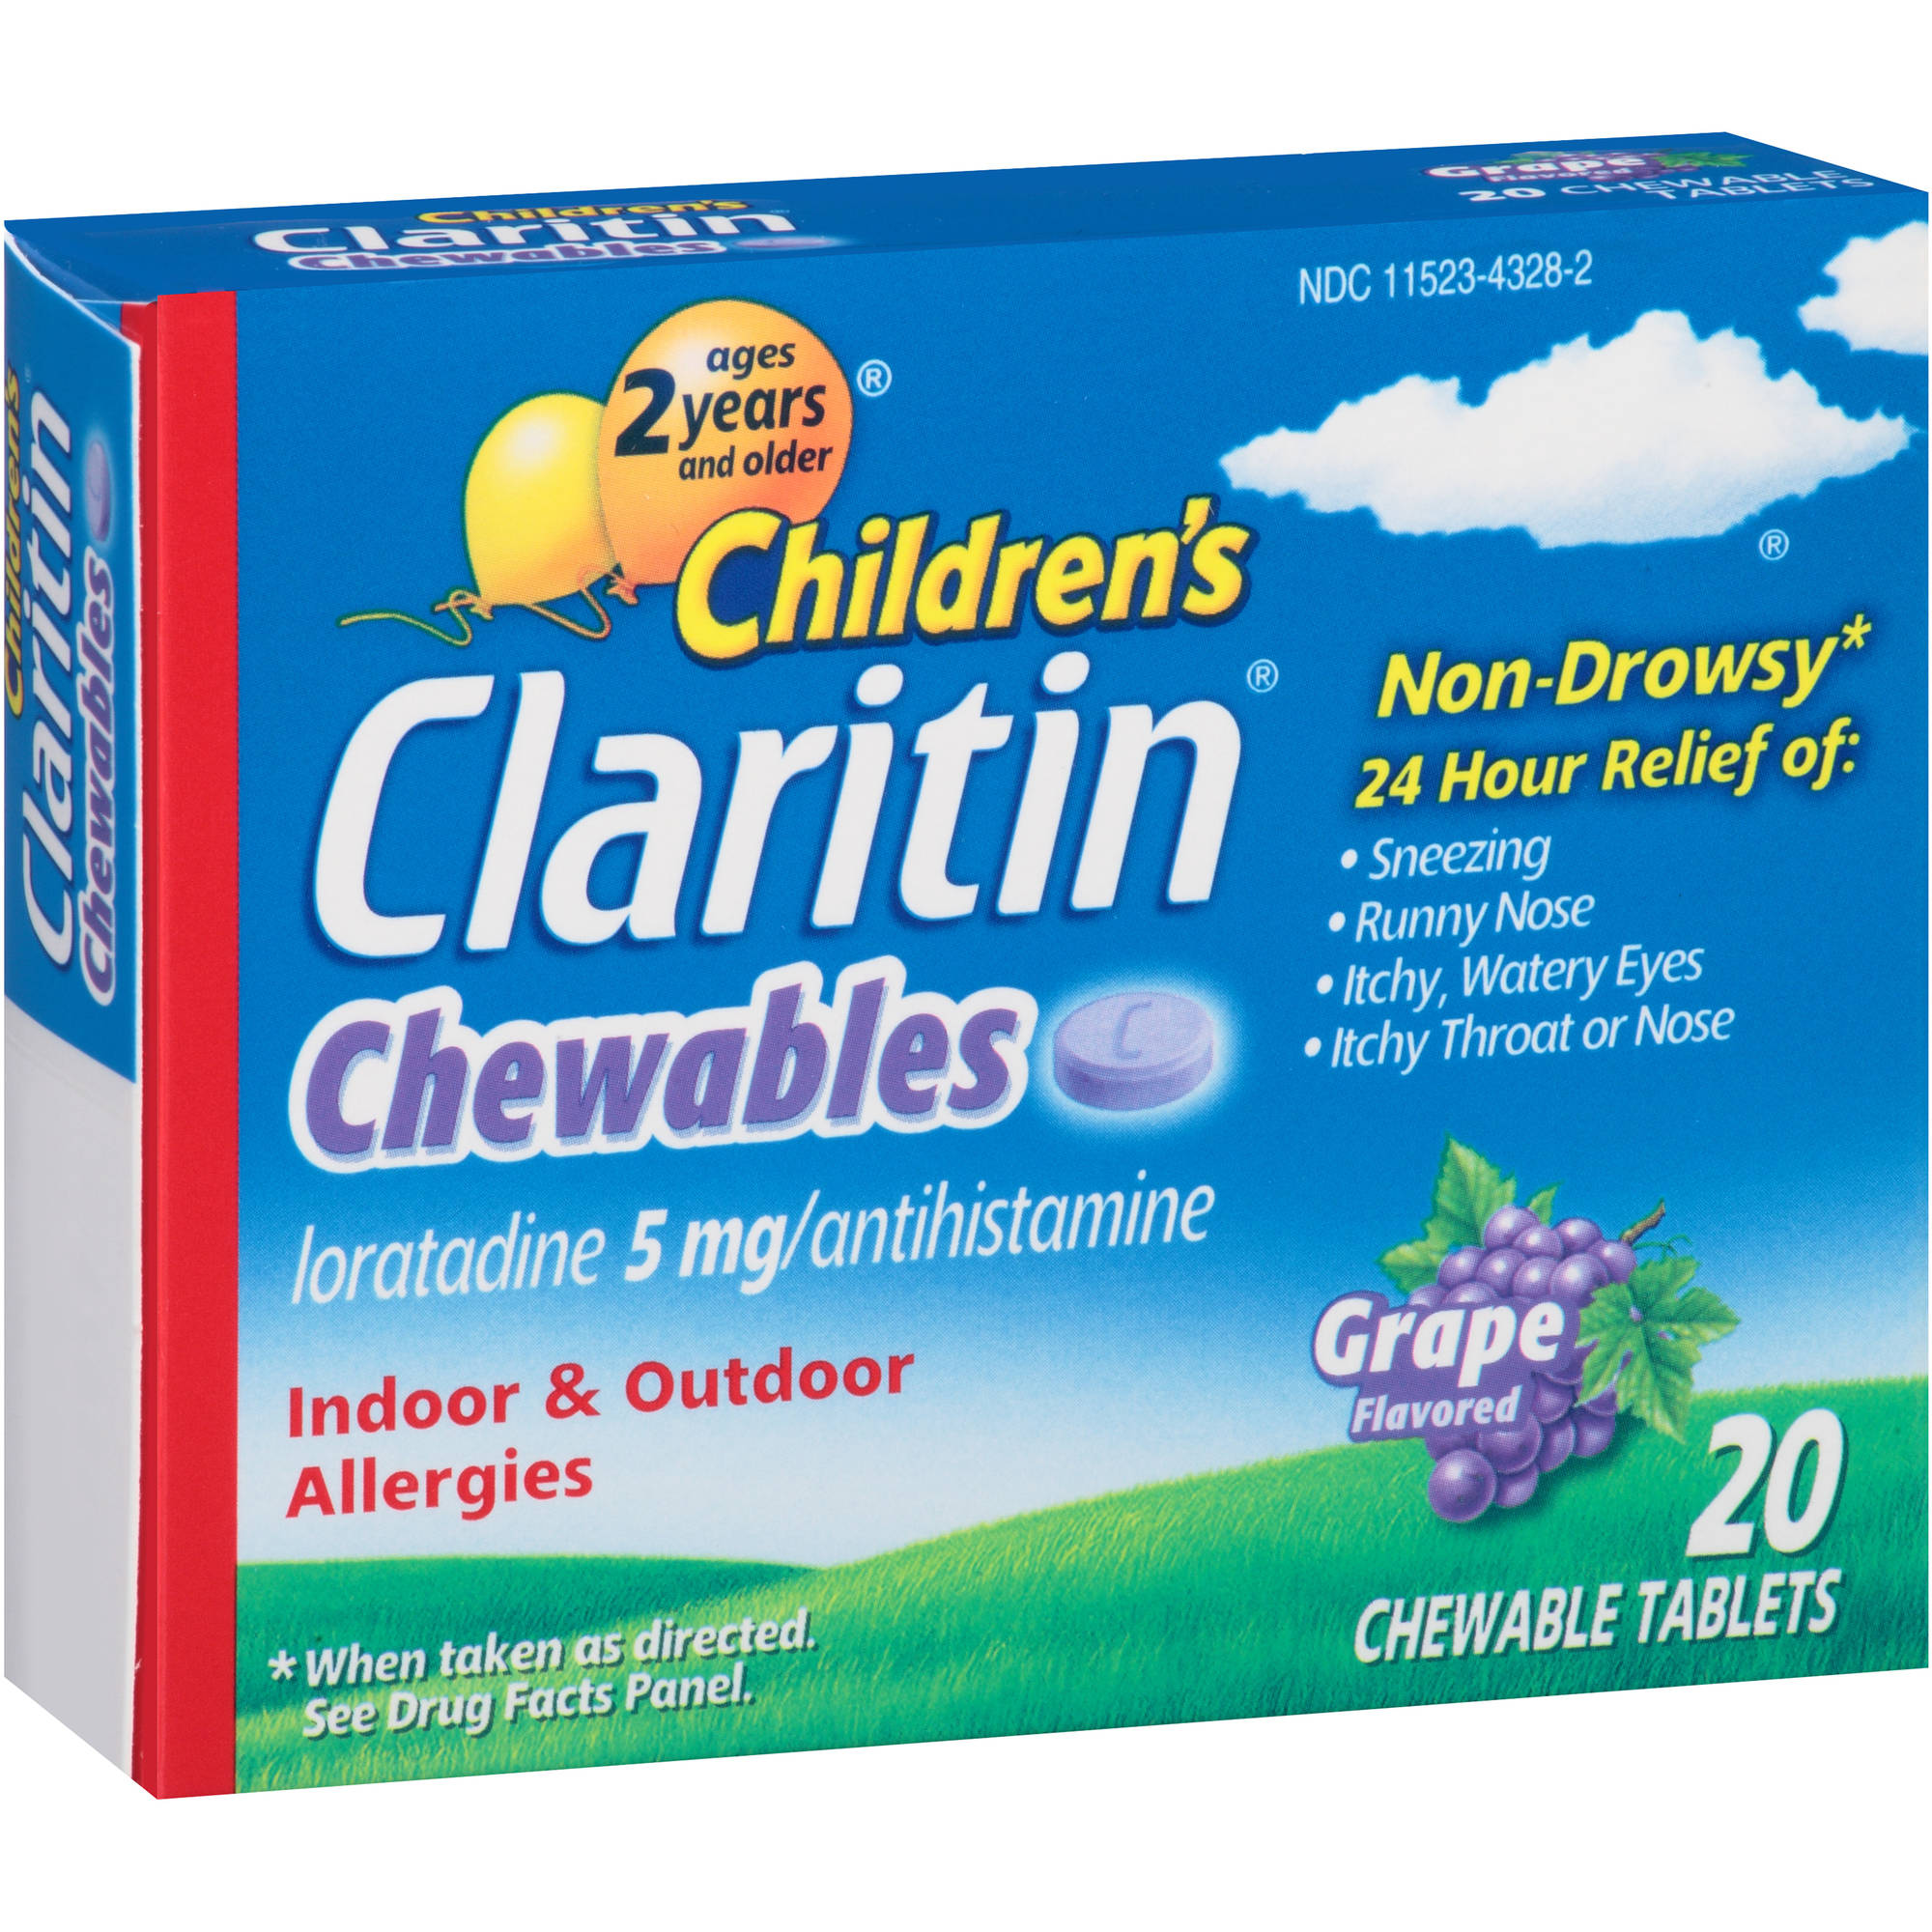 Children's Claritin Chewables Grape Flavored Allergy Relief, 20 count'